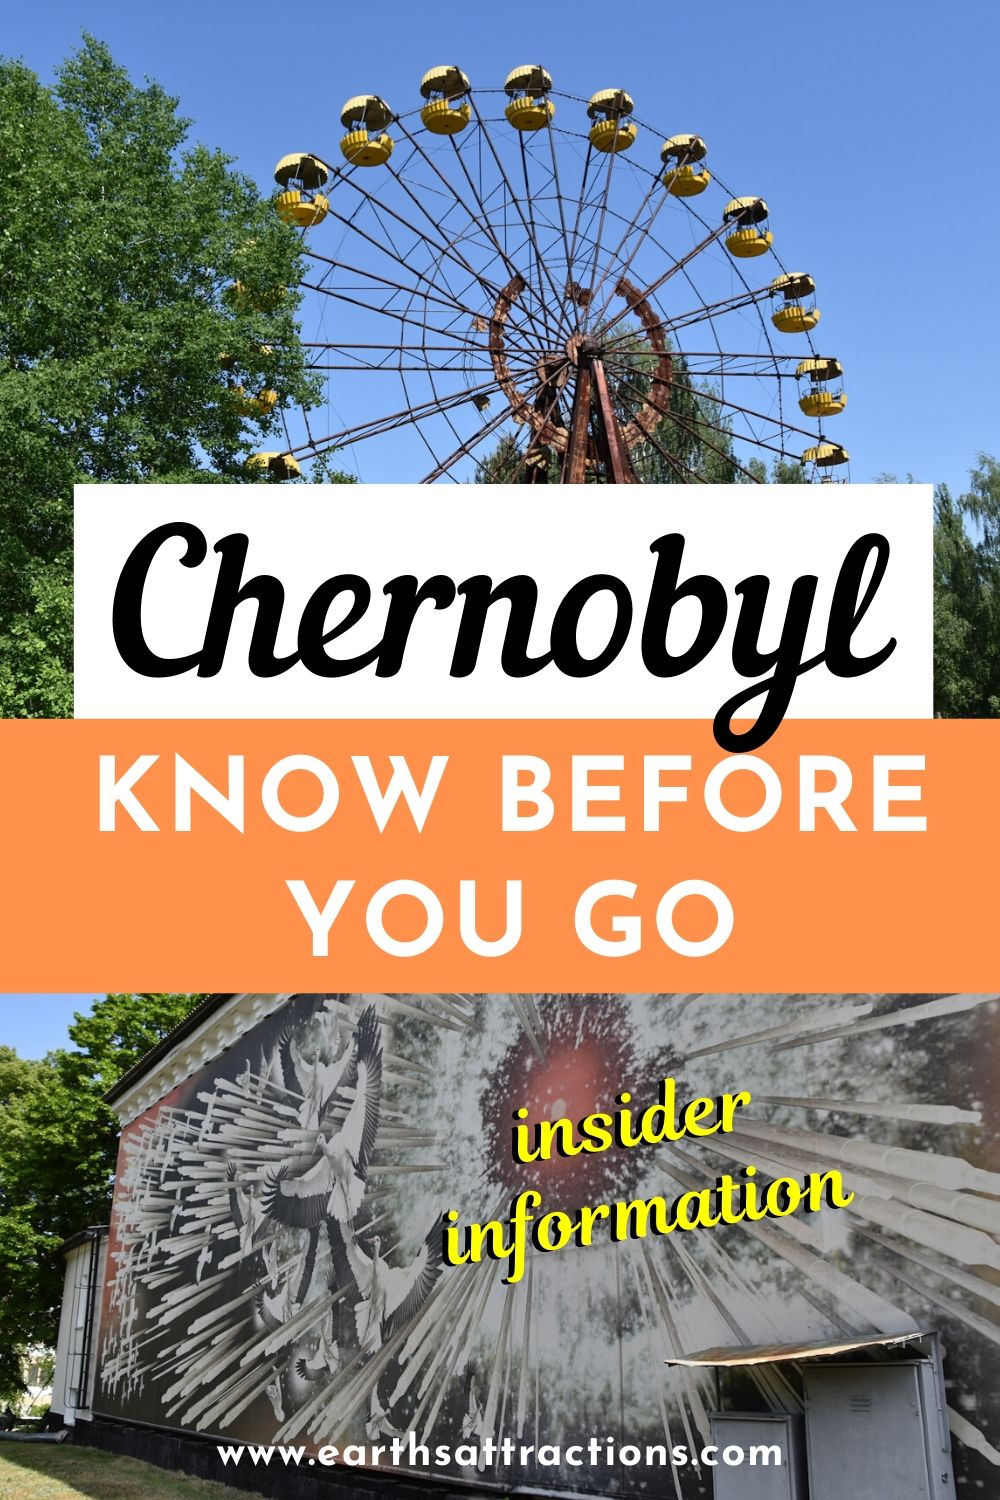 Thinking to visit Chernobyl, Ukraine? Here's everything you need to know before visiting Chernobyl today. Is Chernobyl safe? What to do in Chernobyl? The answer to these and more questions are in this Chernobyl guide #Chernobyl #Chernobyldisaster #ChernobylHBO #ukraine #travel #radiations